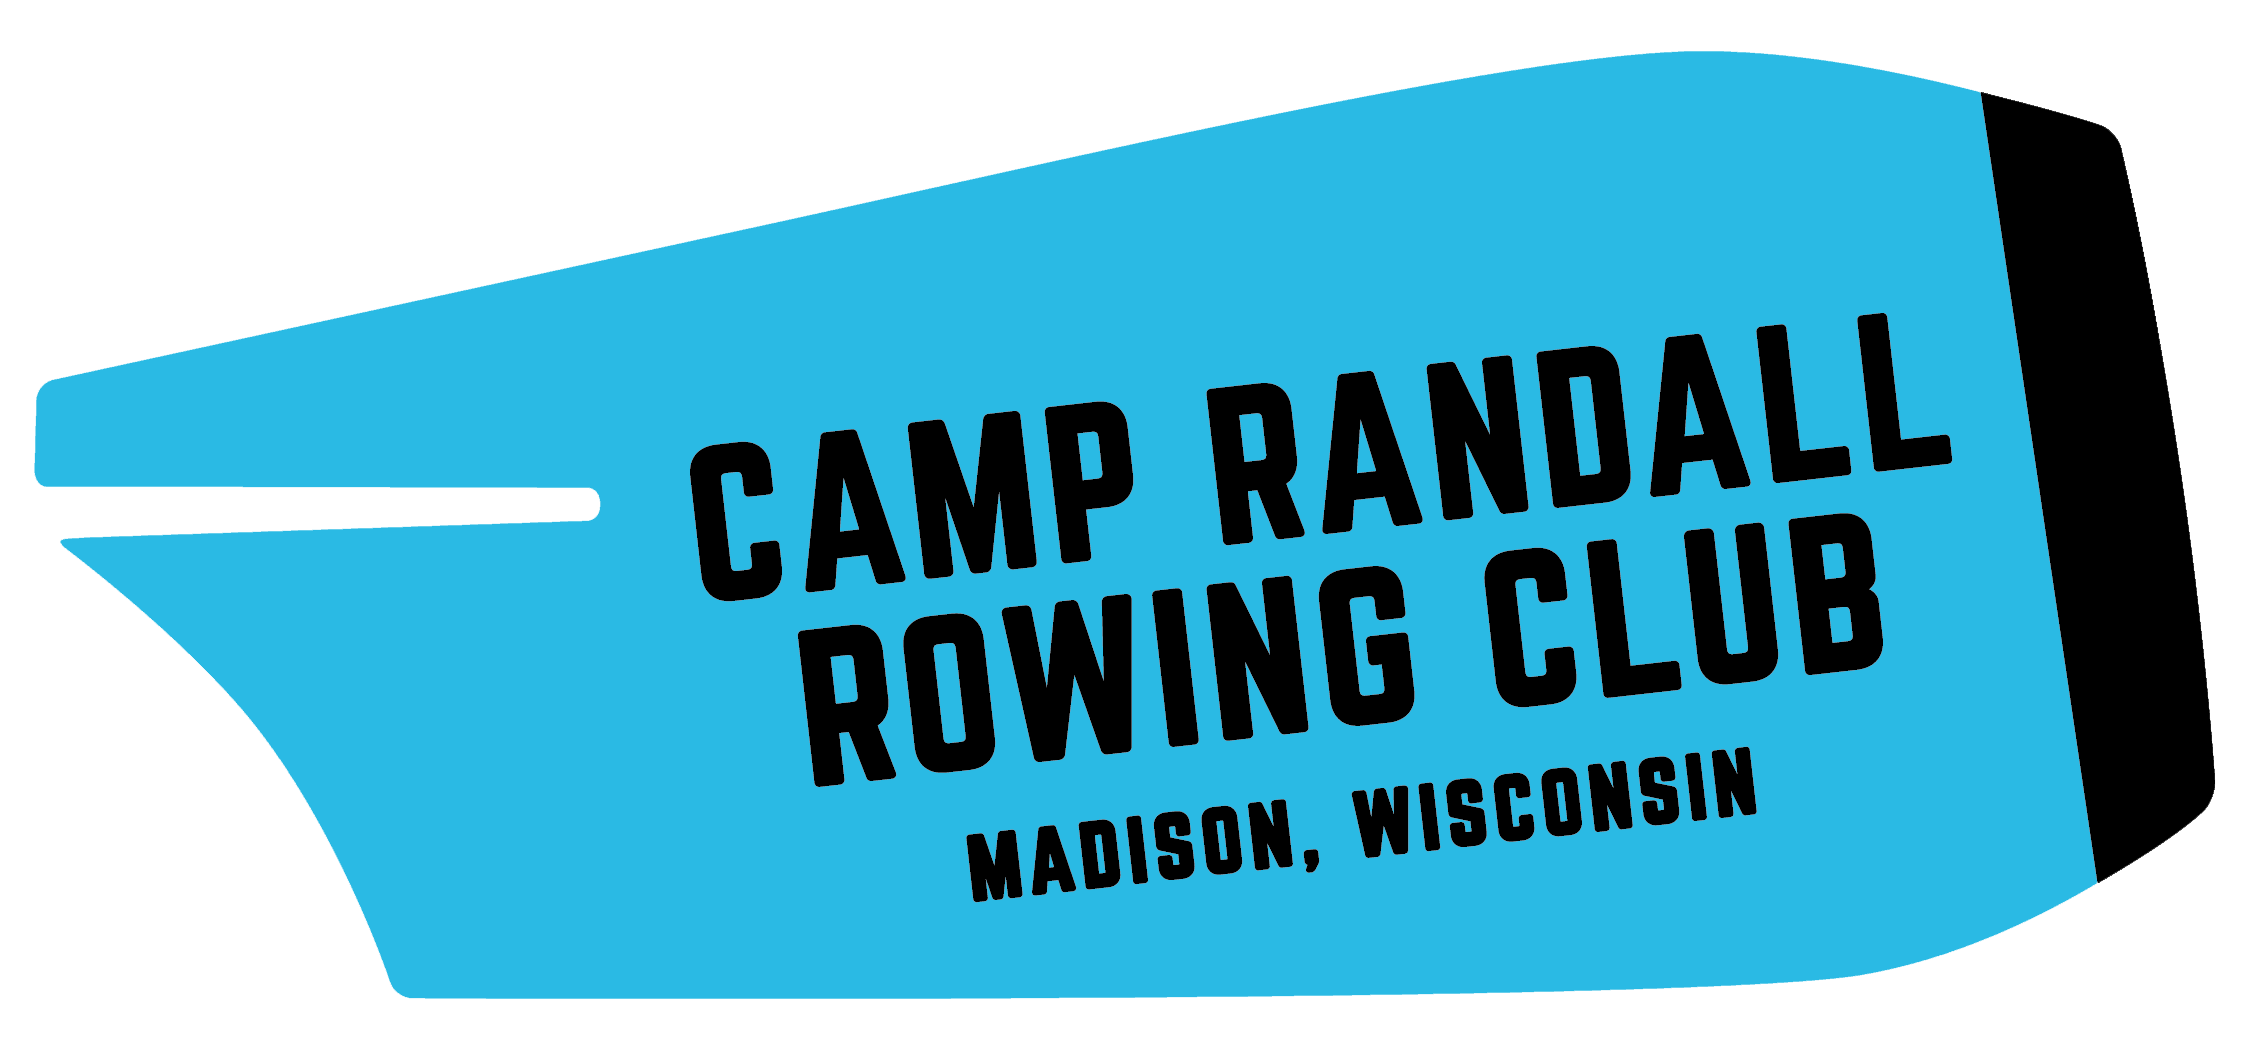 Camp Randall Rowing Club